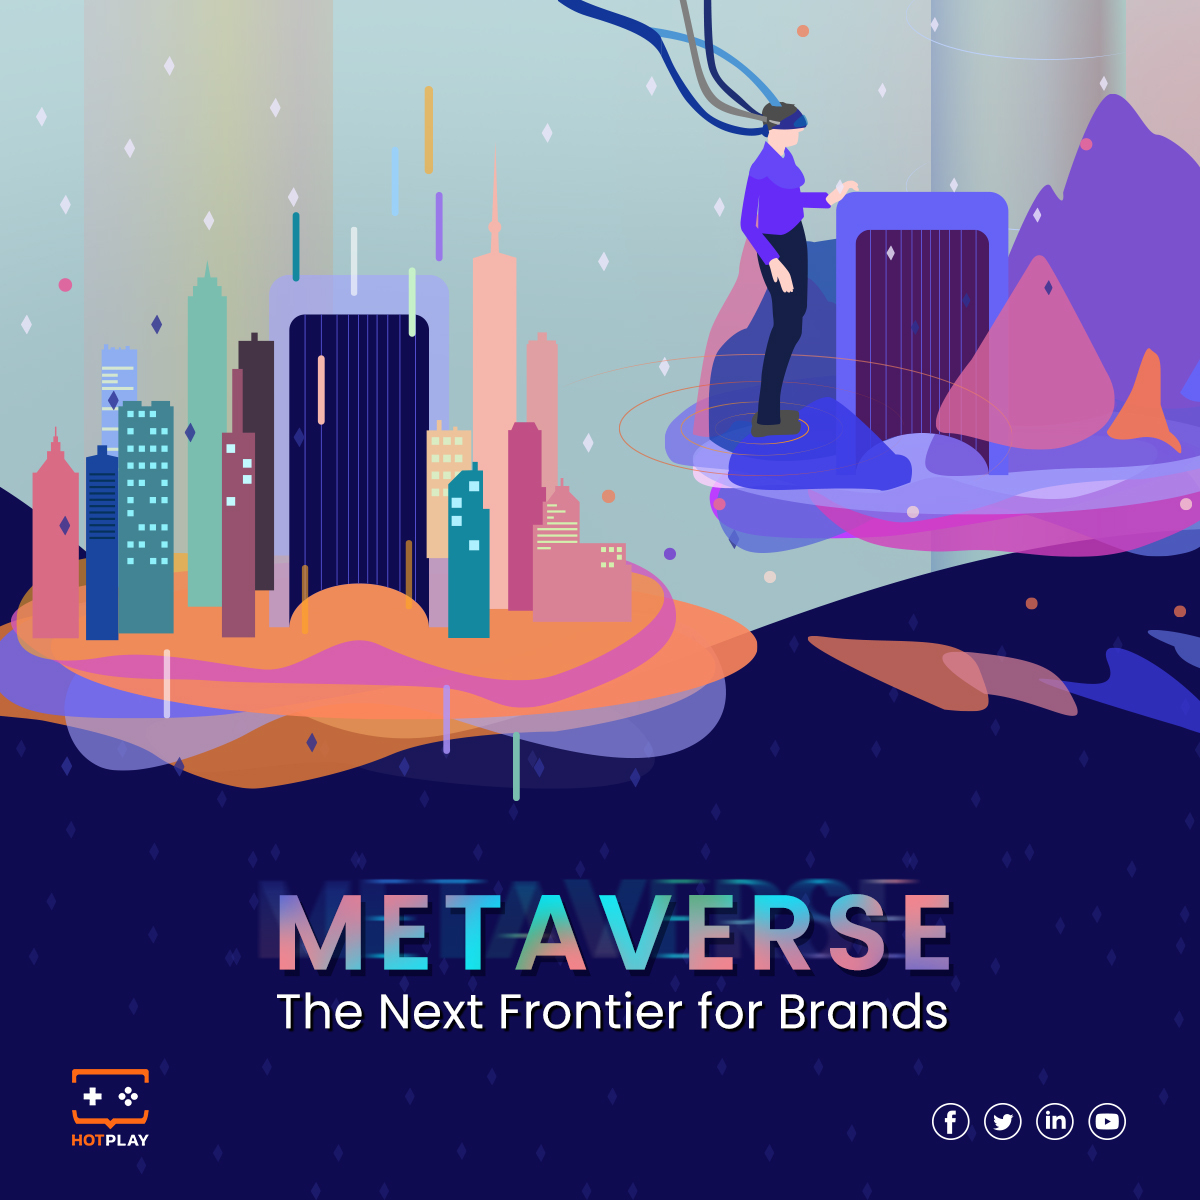 09092021_Metaverse: The Next Frontier for Brands SQ